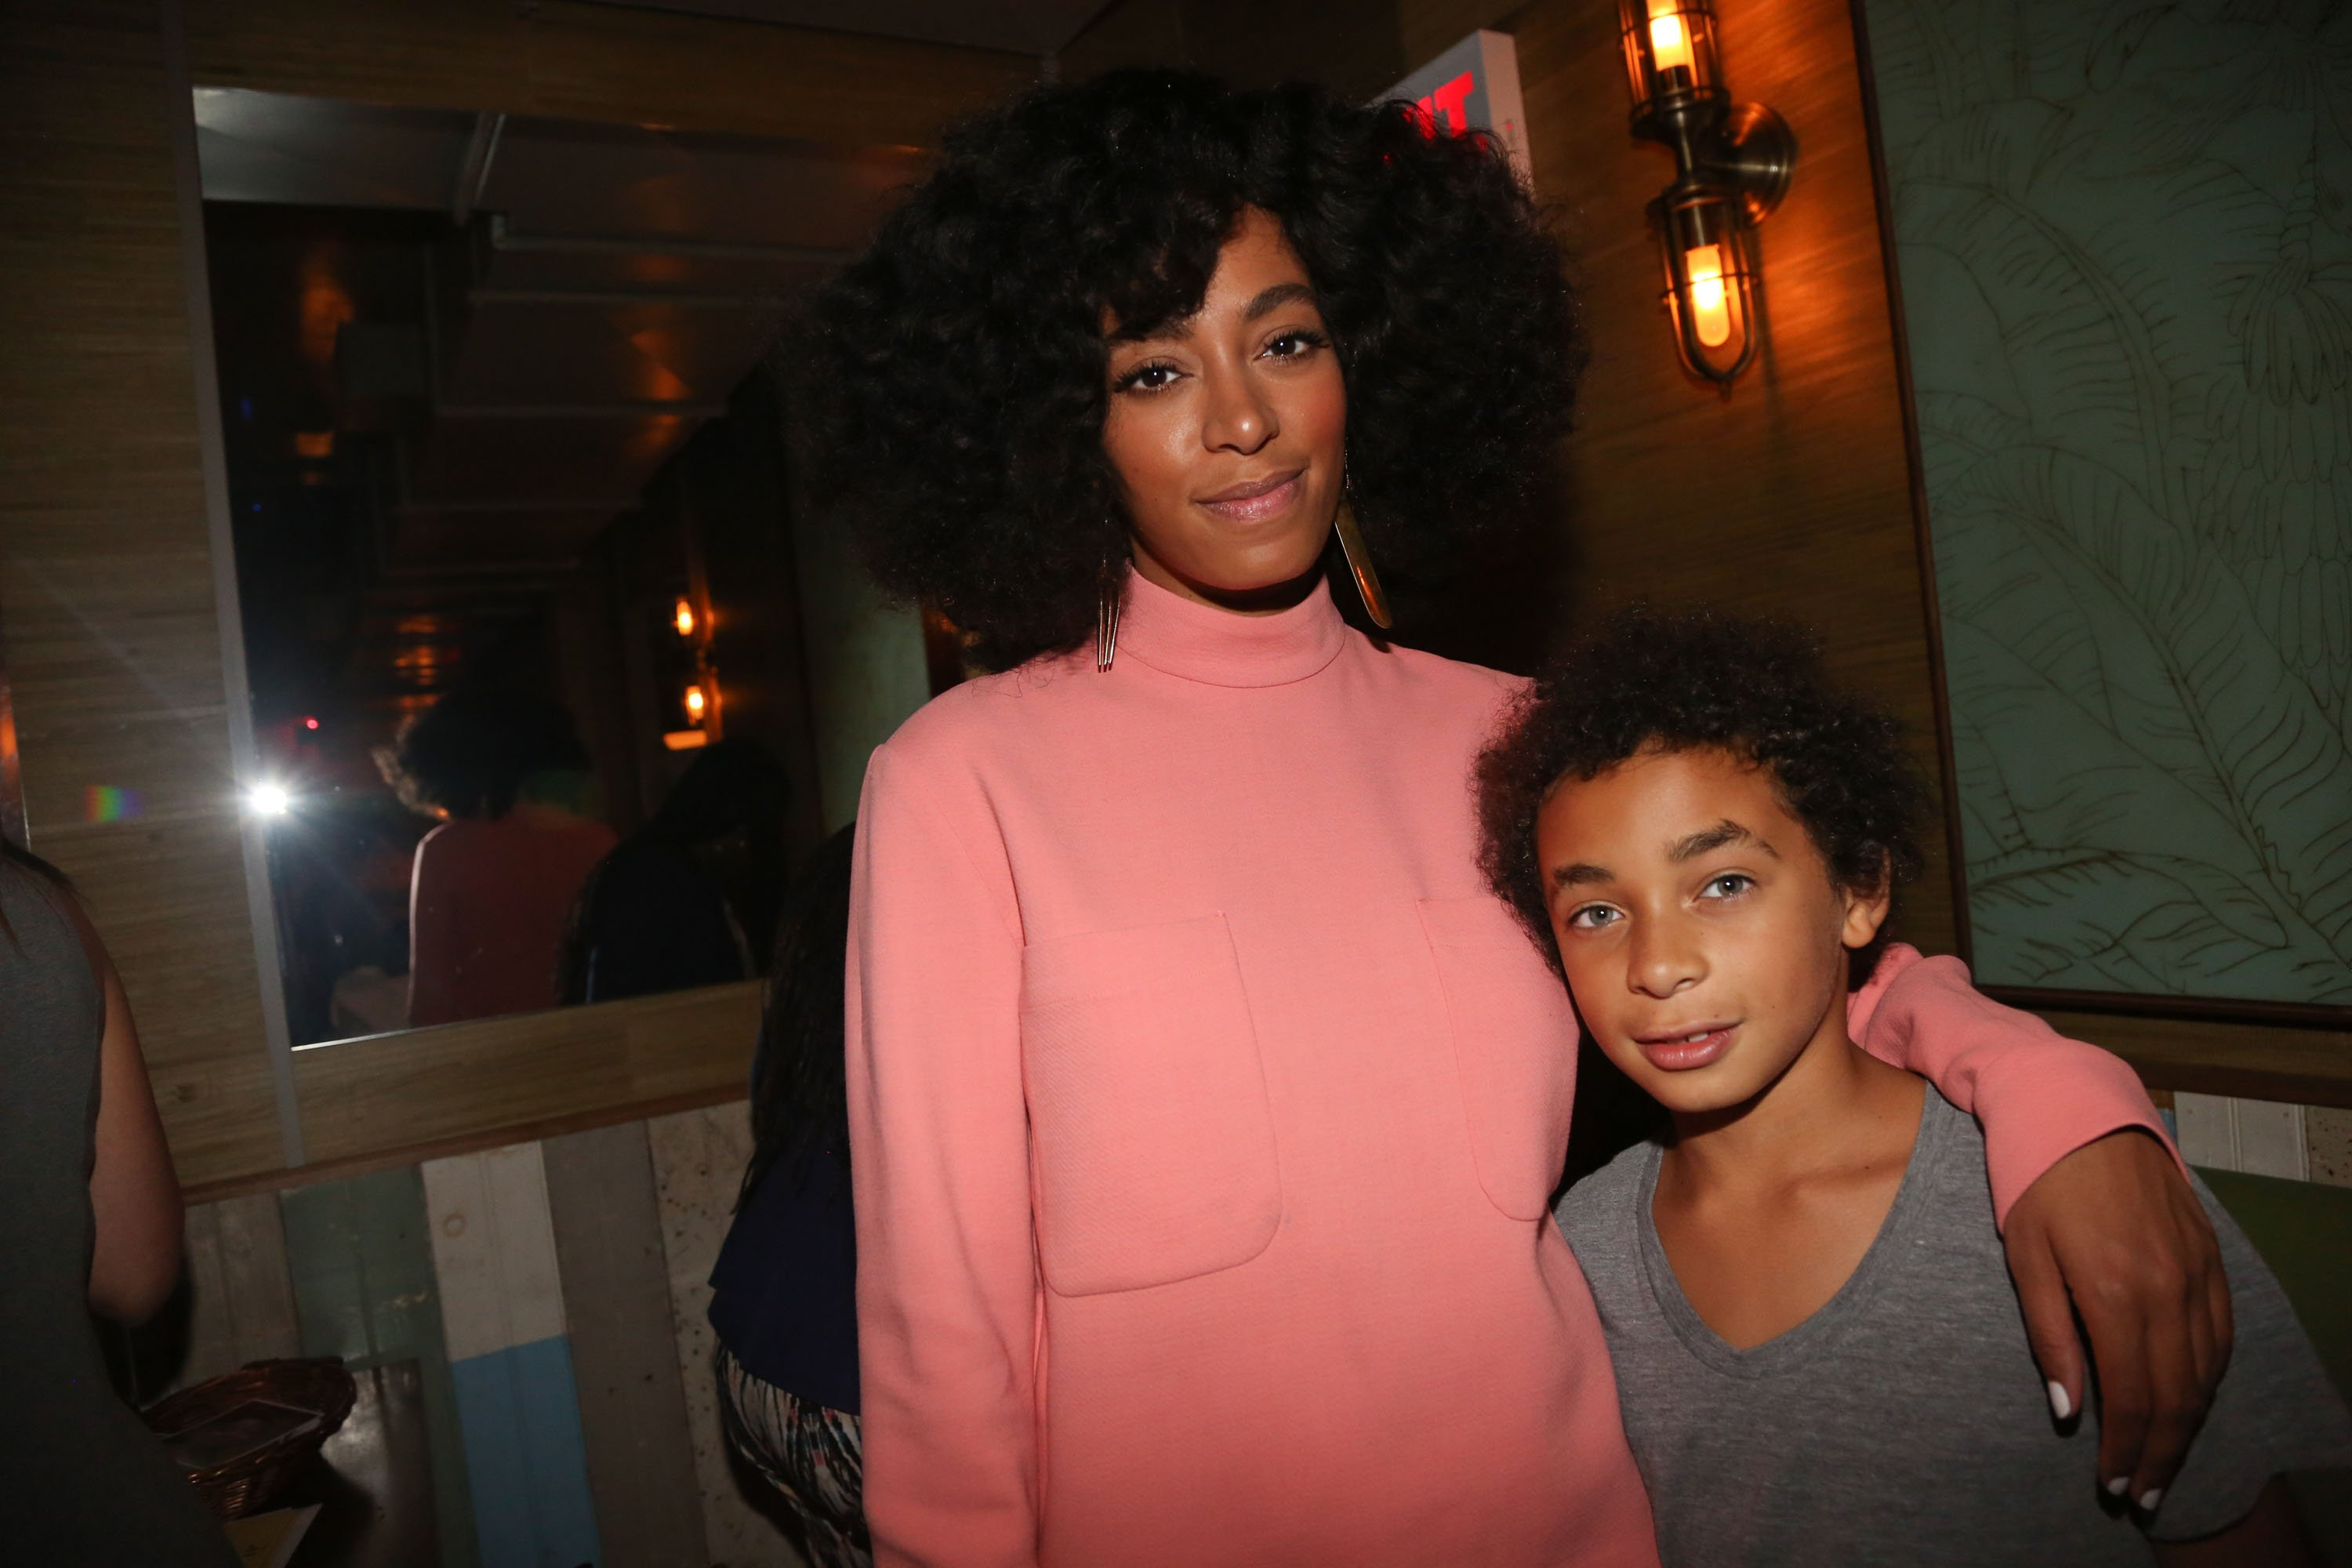 Solange and her son Daniel Julez J. Smith, Jr at the Solange and 14+ Foundation Partnership Party on May 4, 2014, in the Brooklyn borough of New York City | Photo: Johnny Nunez/WireImage/Getty Images